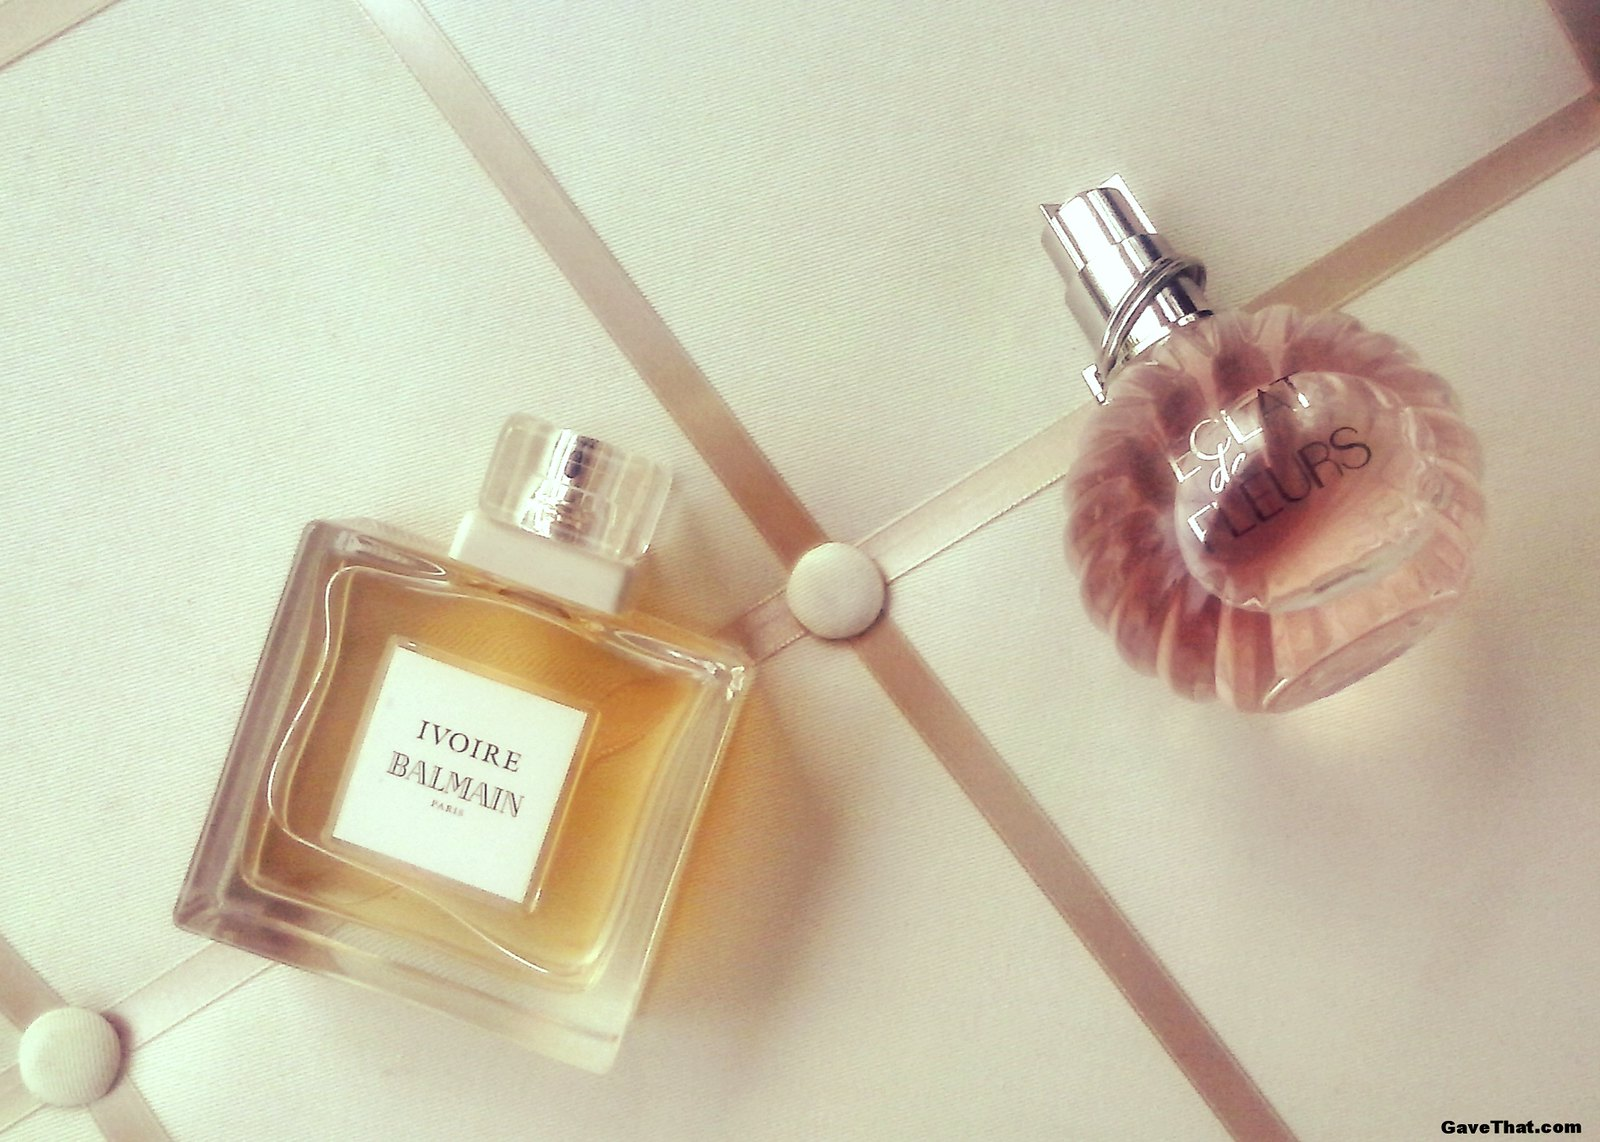 Balmain Ivorie and Lanvin Eclat dr Fleurs Fragrance reviews